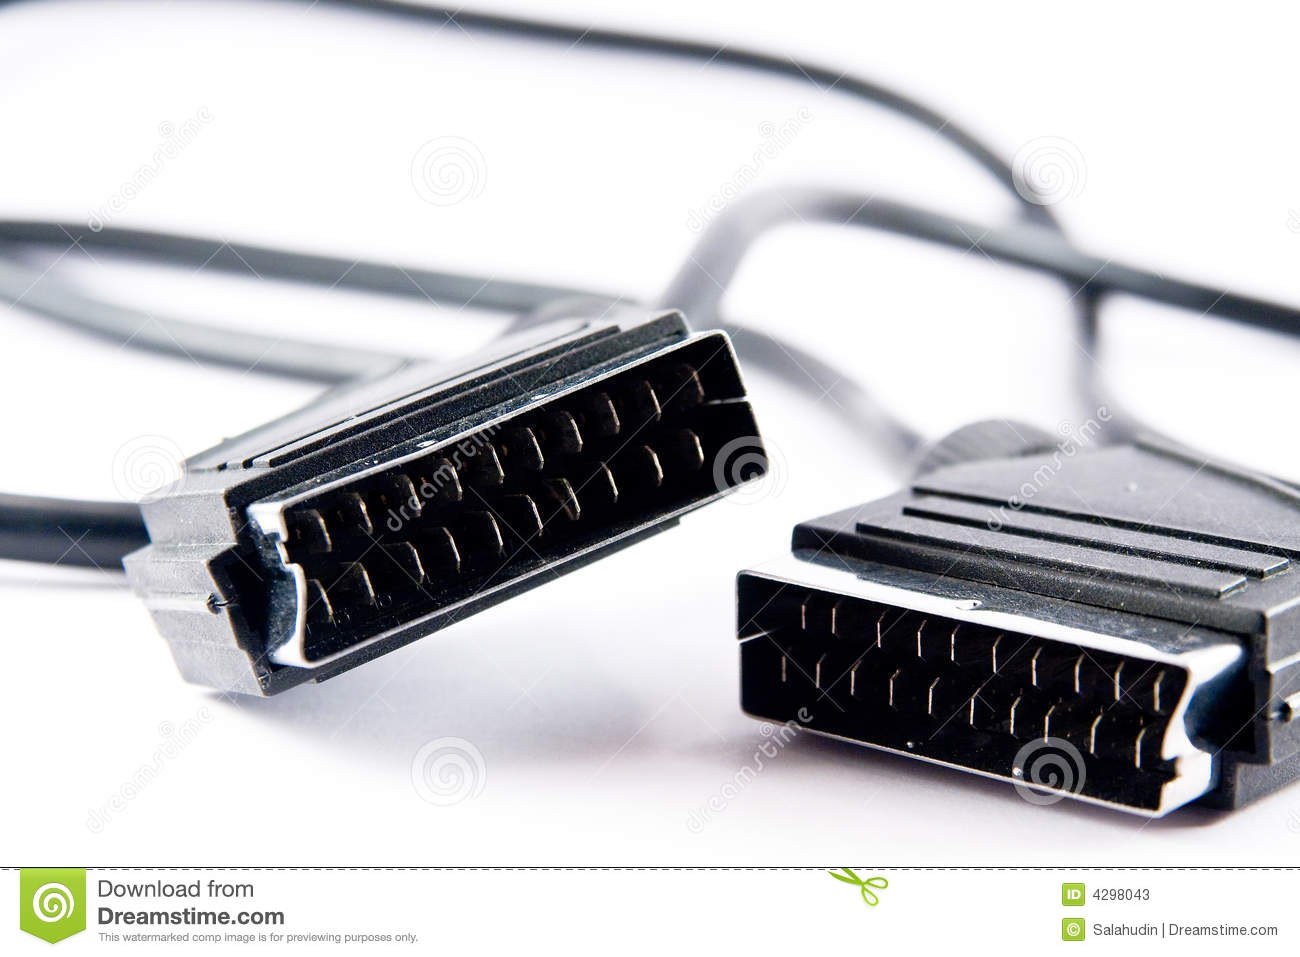 Scart video cable